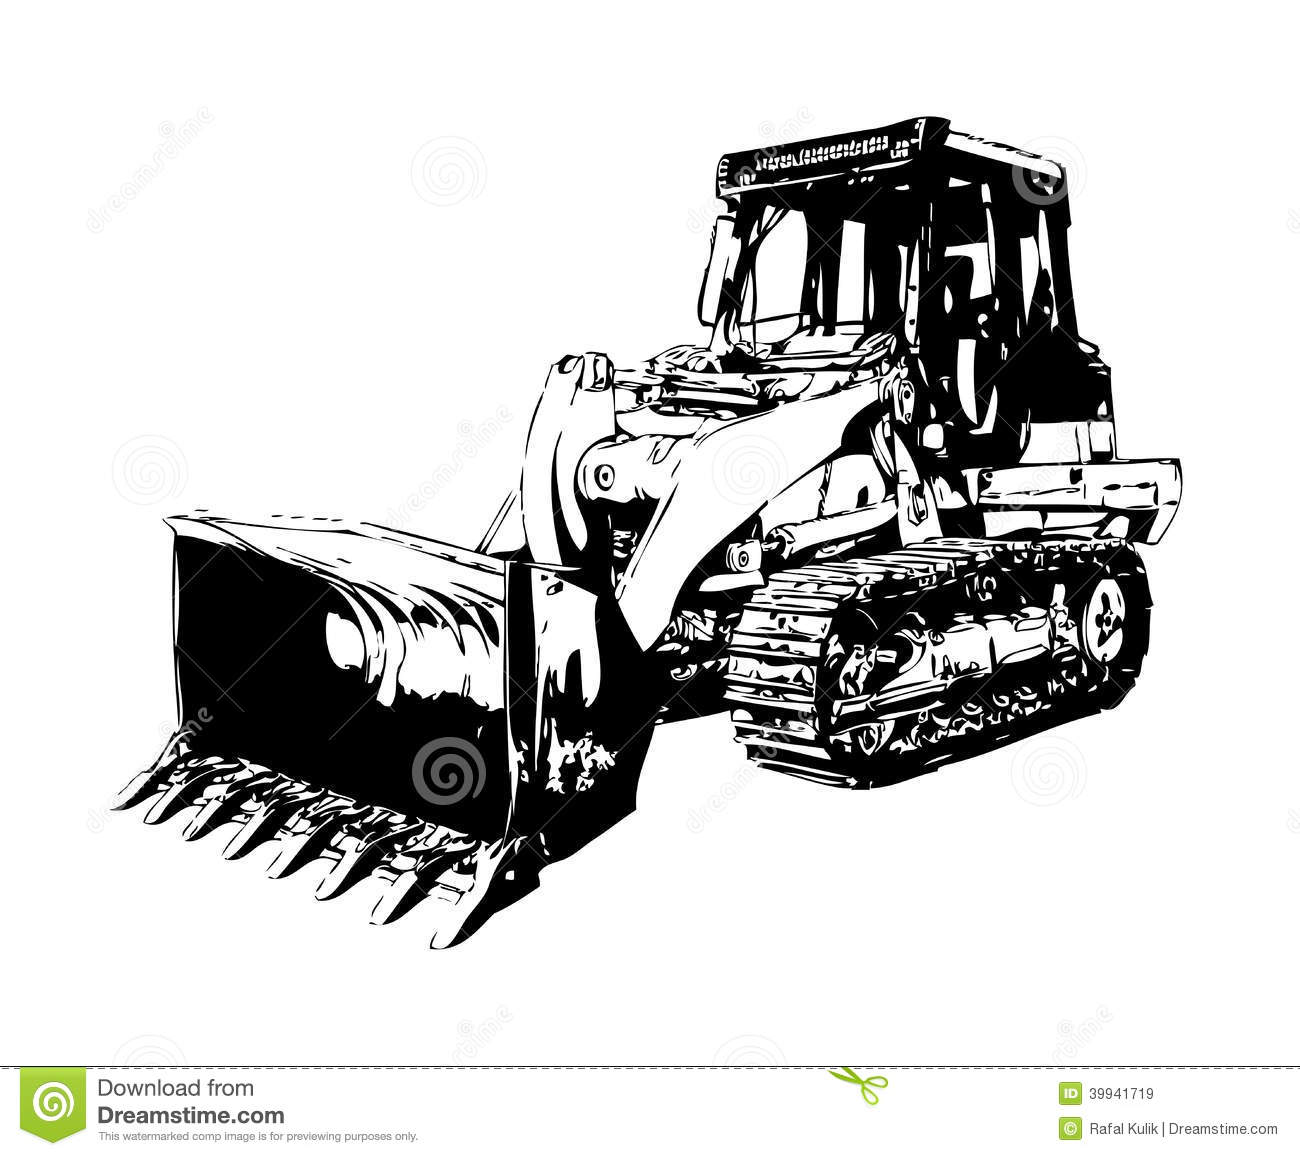 Royalty Free Stock Images Bulldozer Illustration Color Art Hand Made Drawing Artwork Design Image39941719 on diesel engine clip art